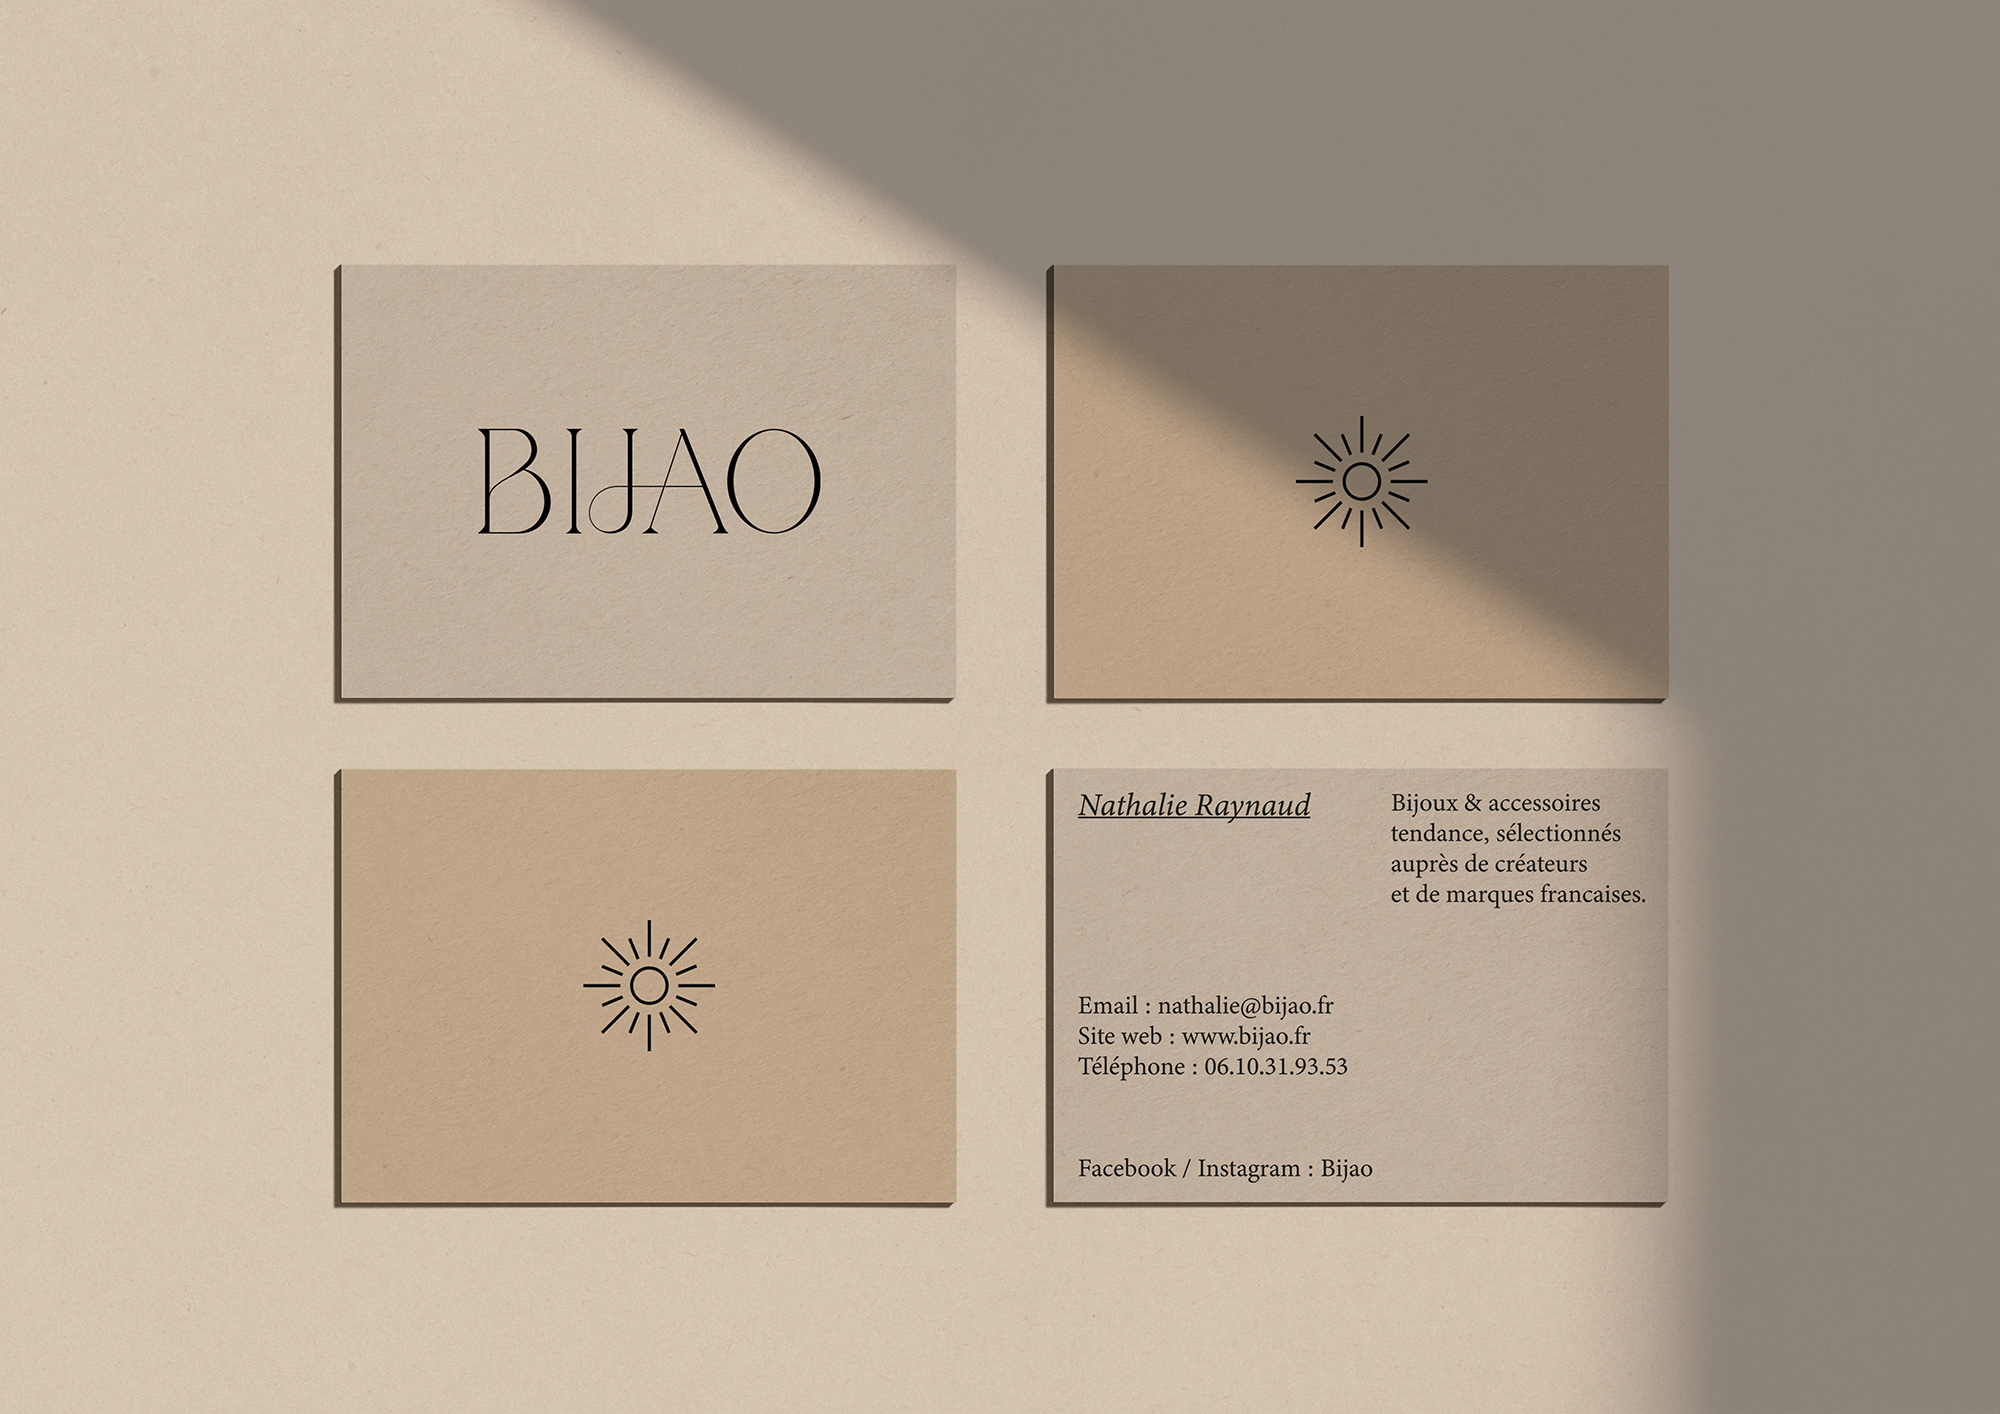 Bijao business card